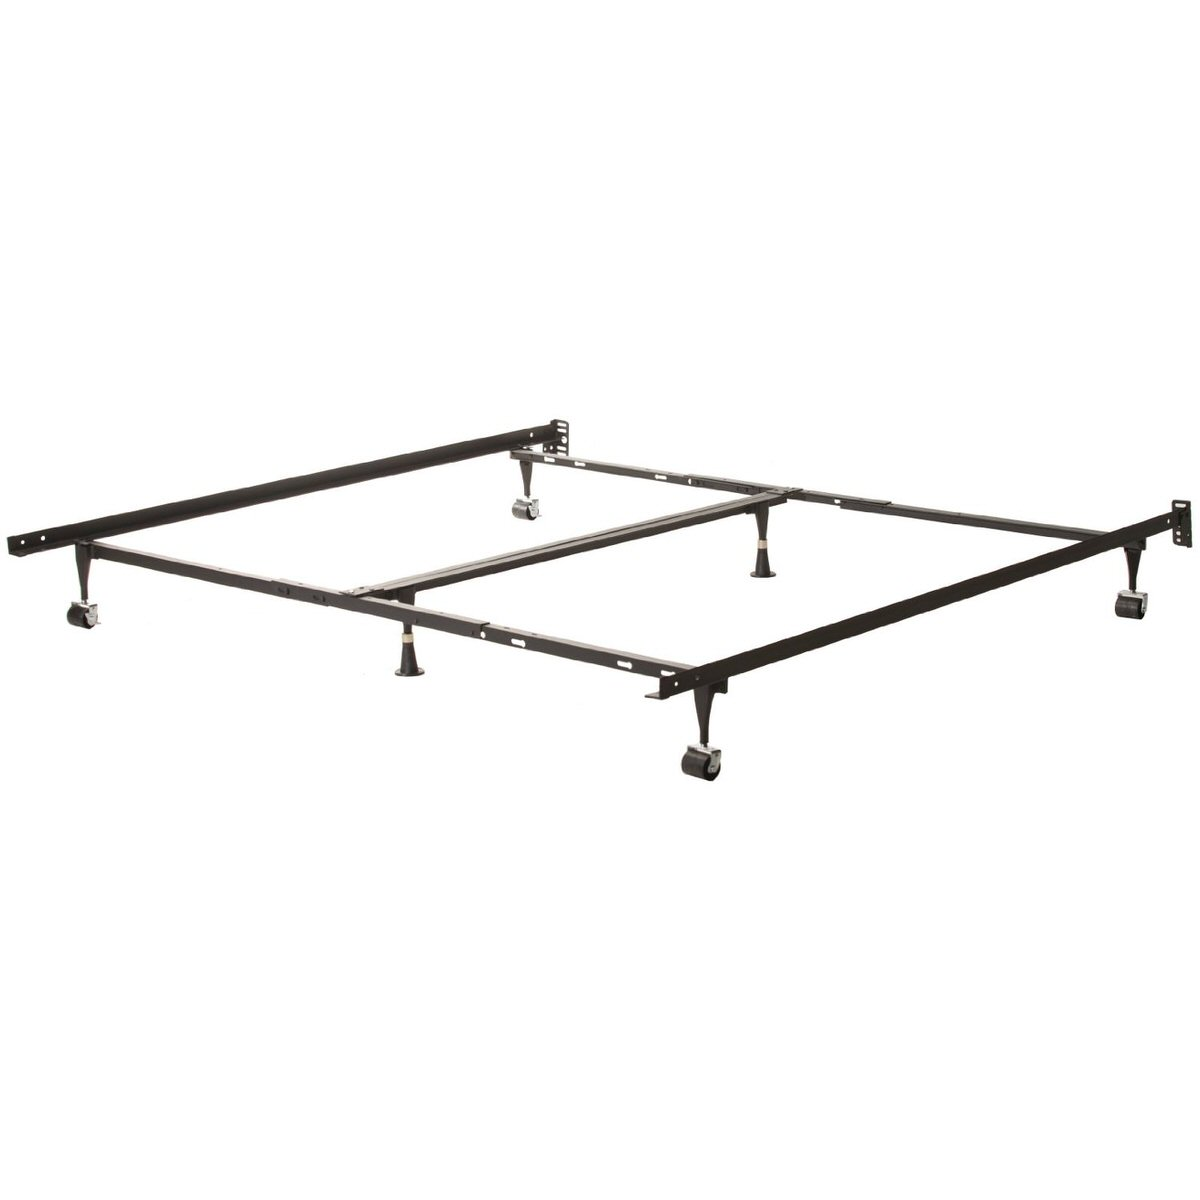 Adjustable Full Queen Bed Frame : Universal adjustable metal bed frame twin full queen